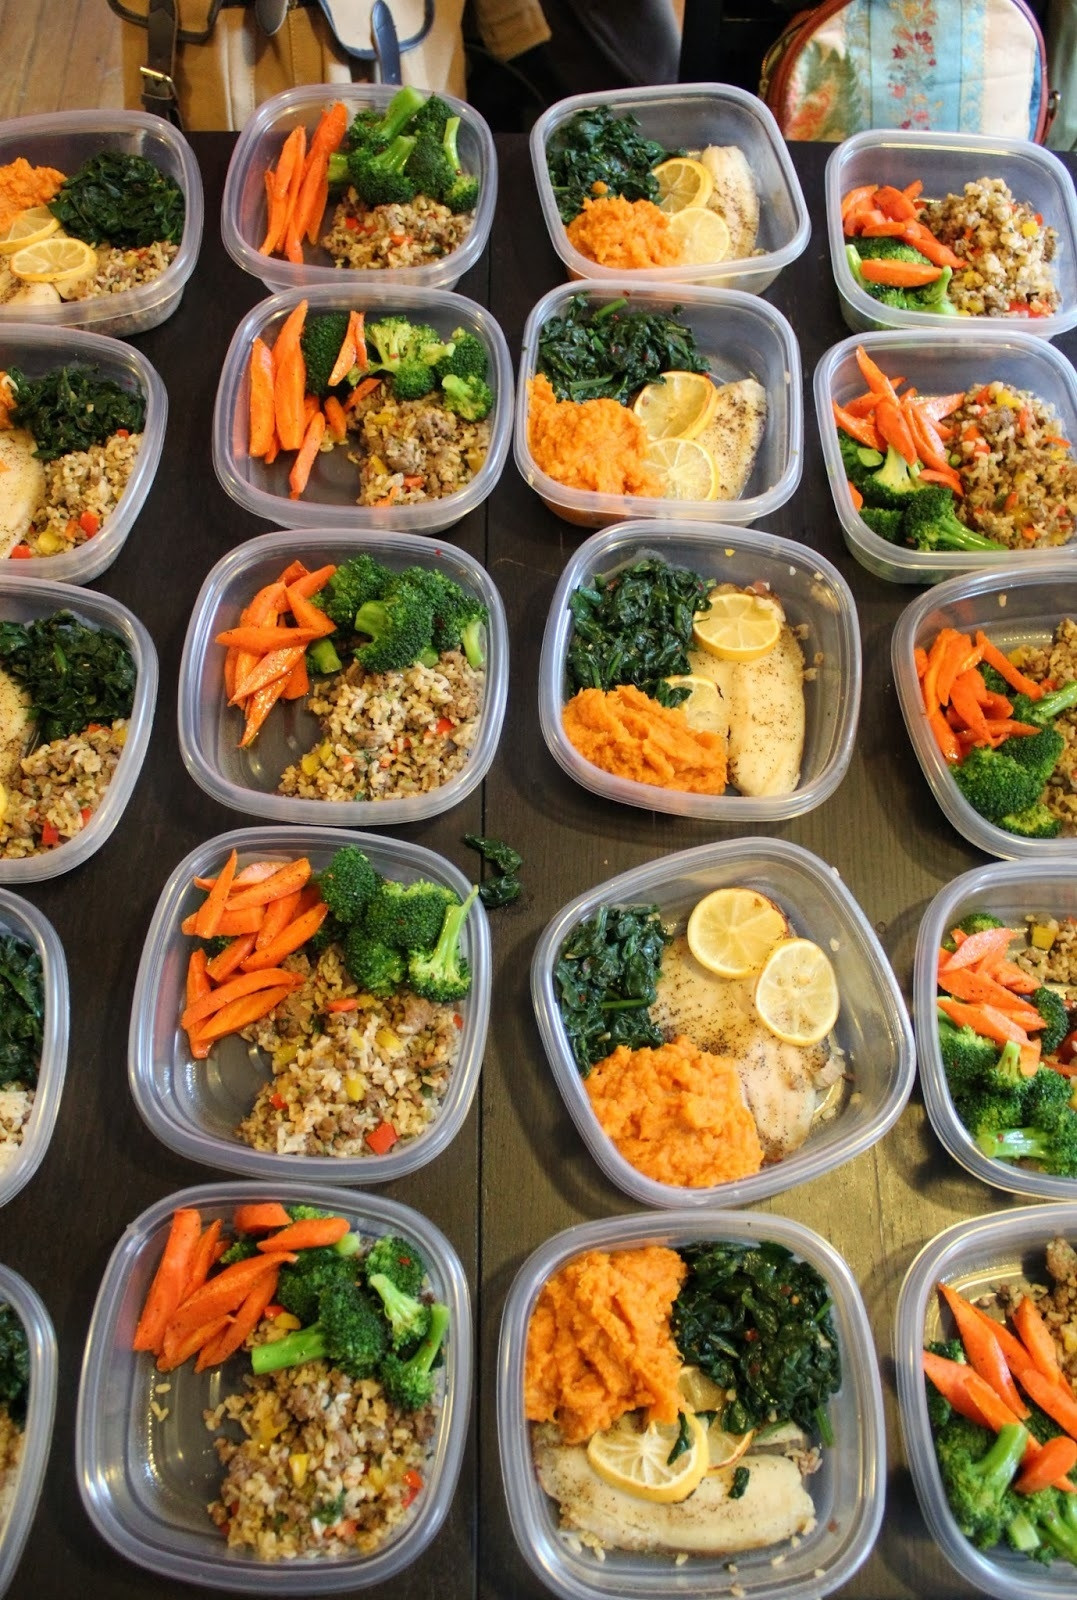 Healthy Lunch Snacks  Healthy Meal Prep Ideas For The WeekWritings and Papers